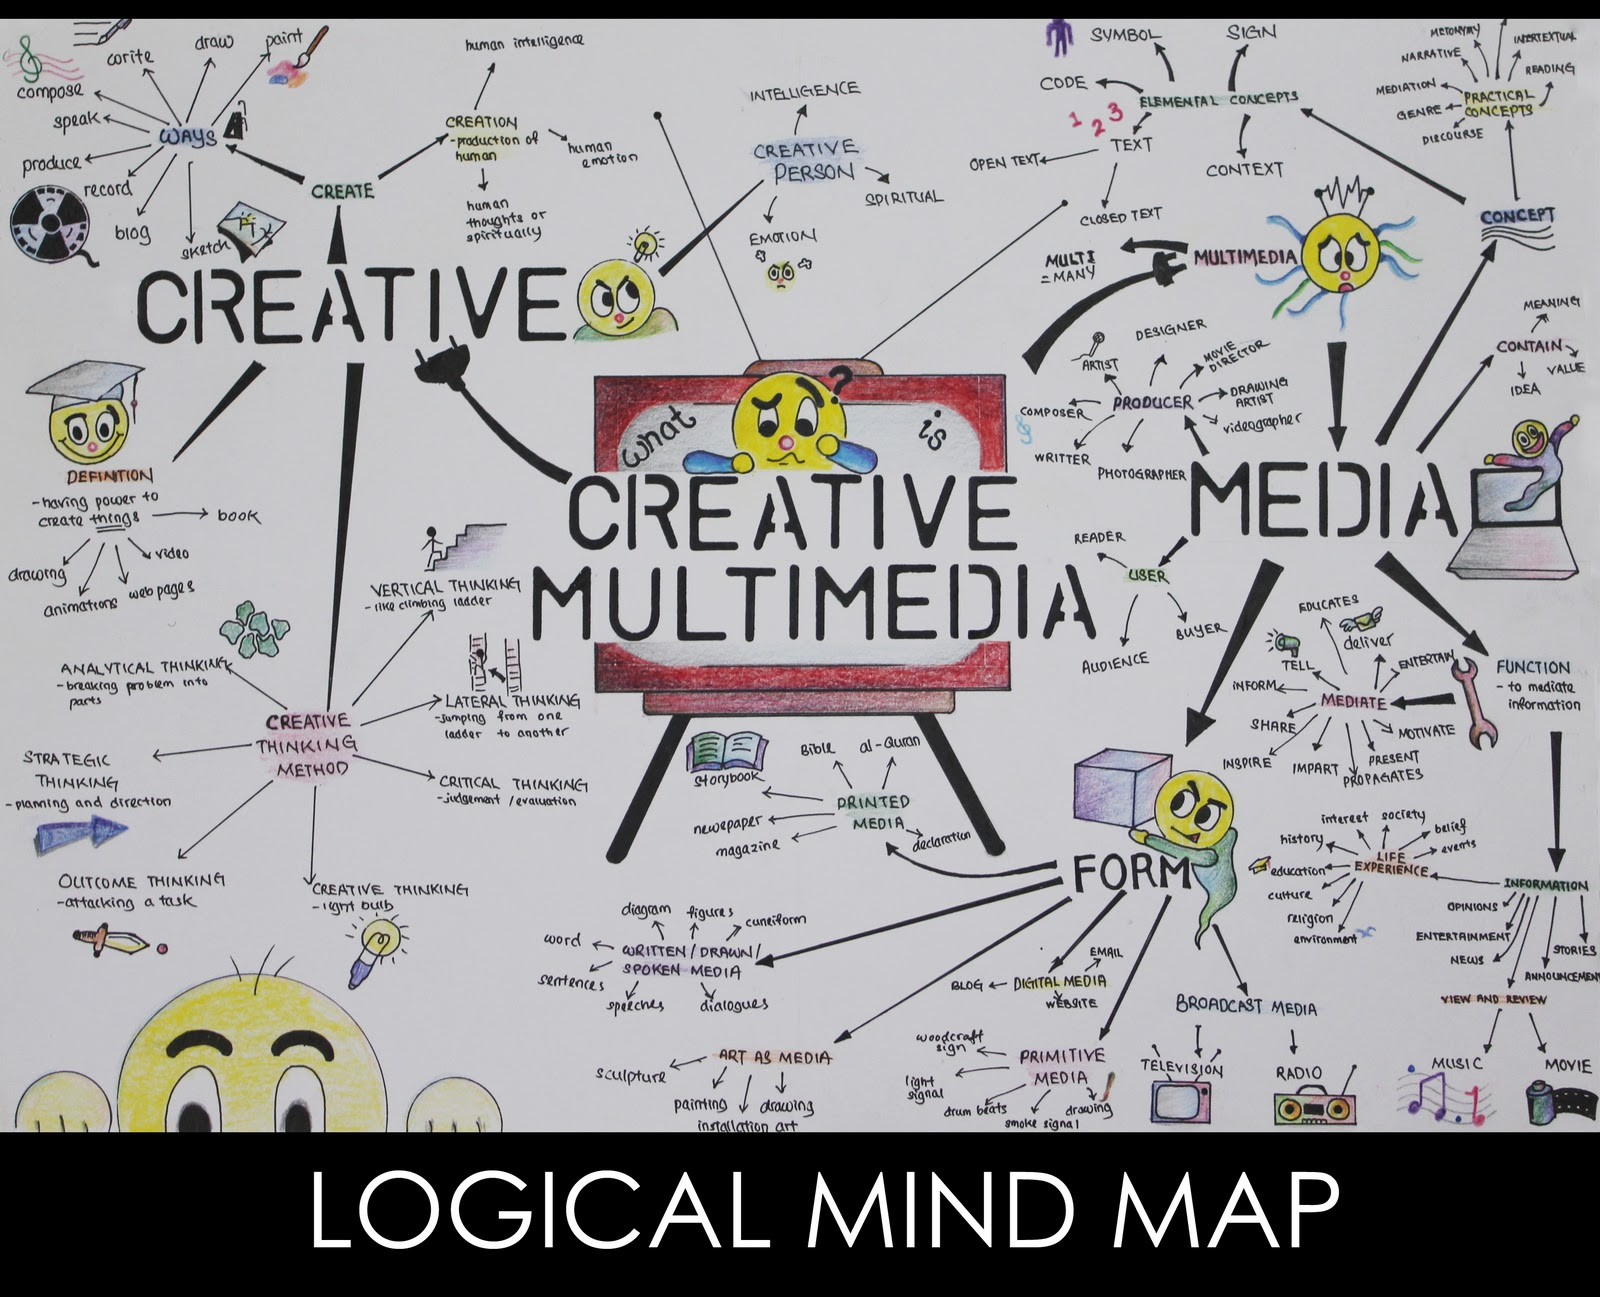 logical mind maps what is creative multimedia